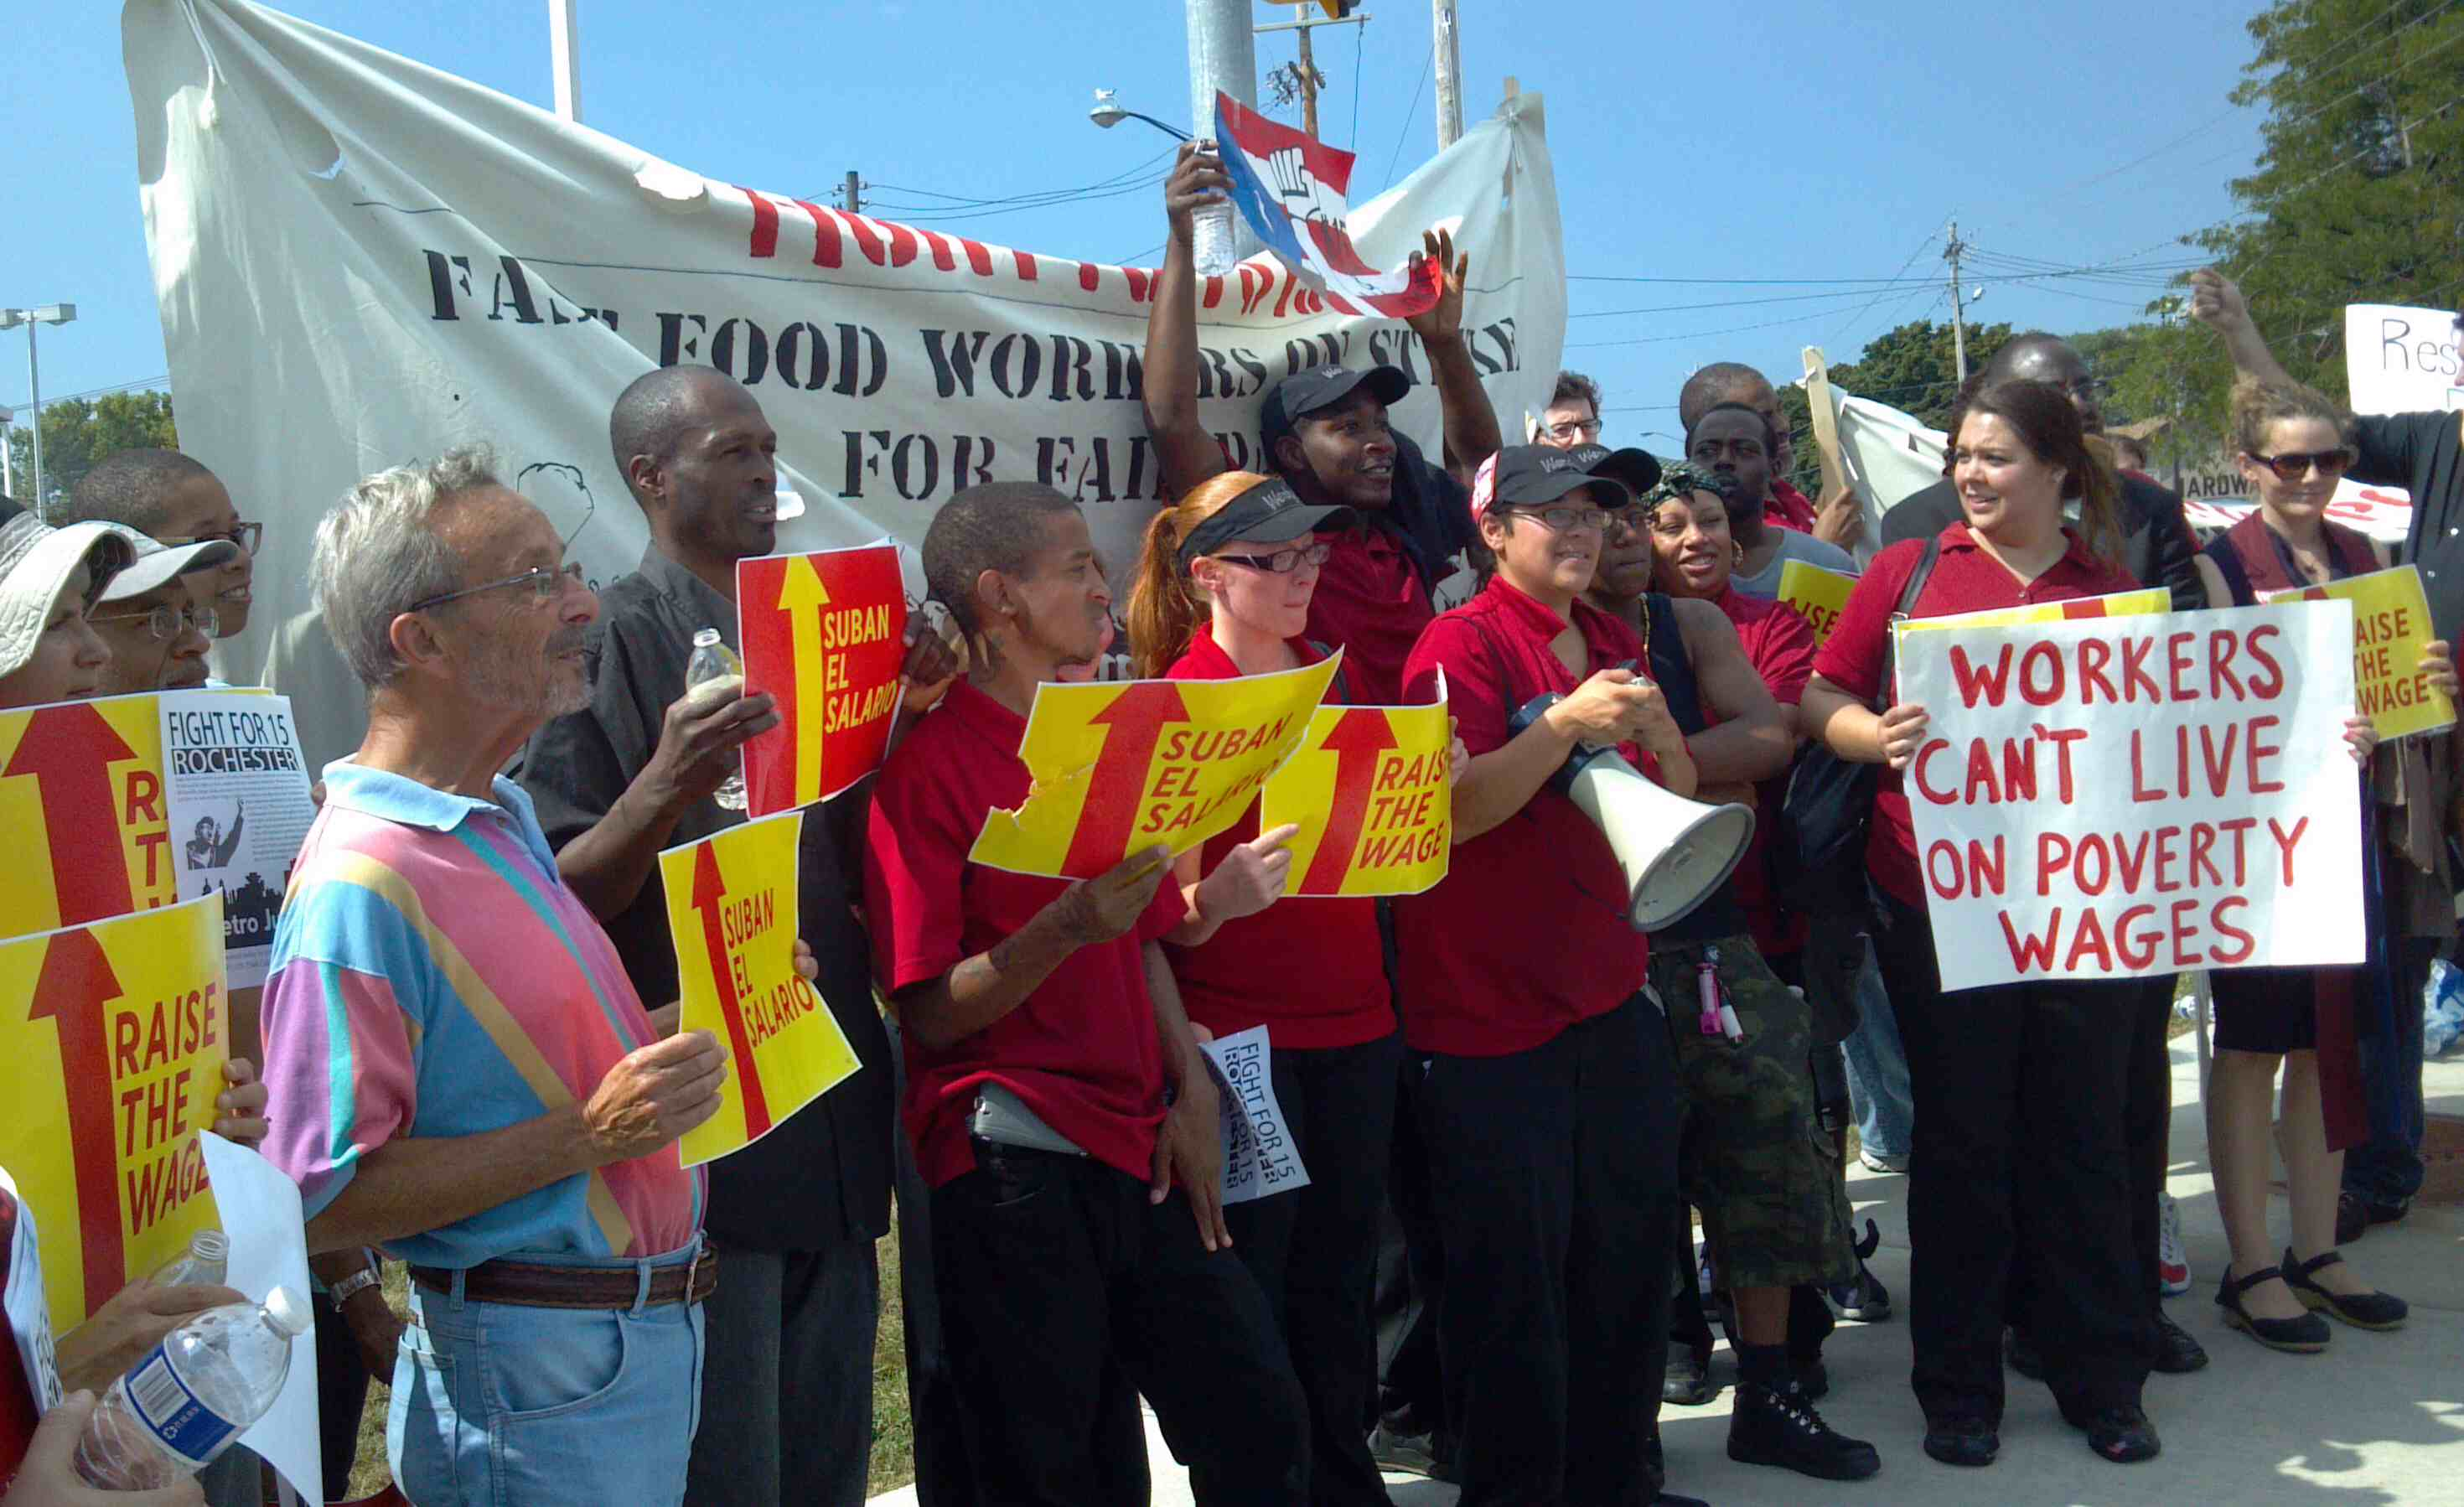 2014-09-04standing_with_fast_food_workers.jpg